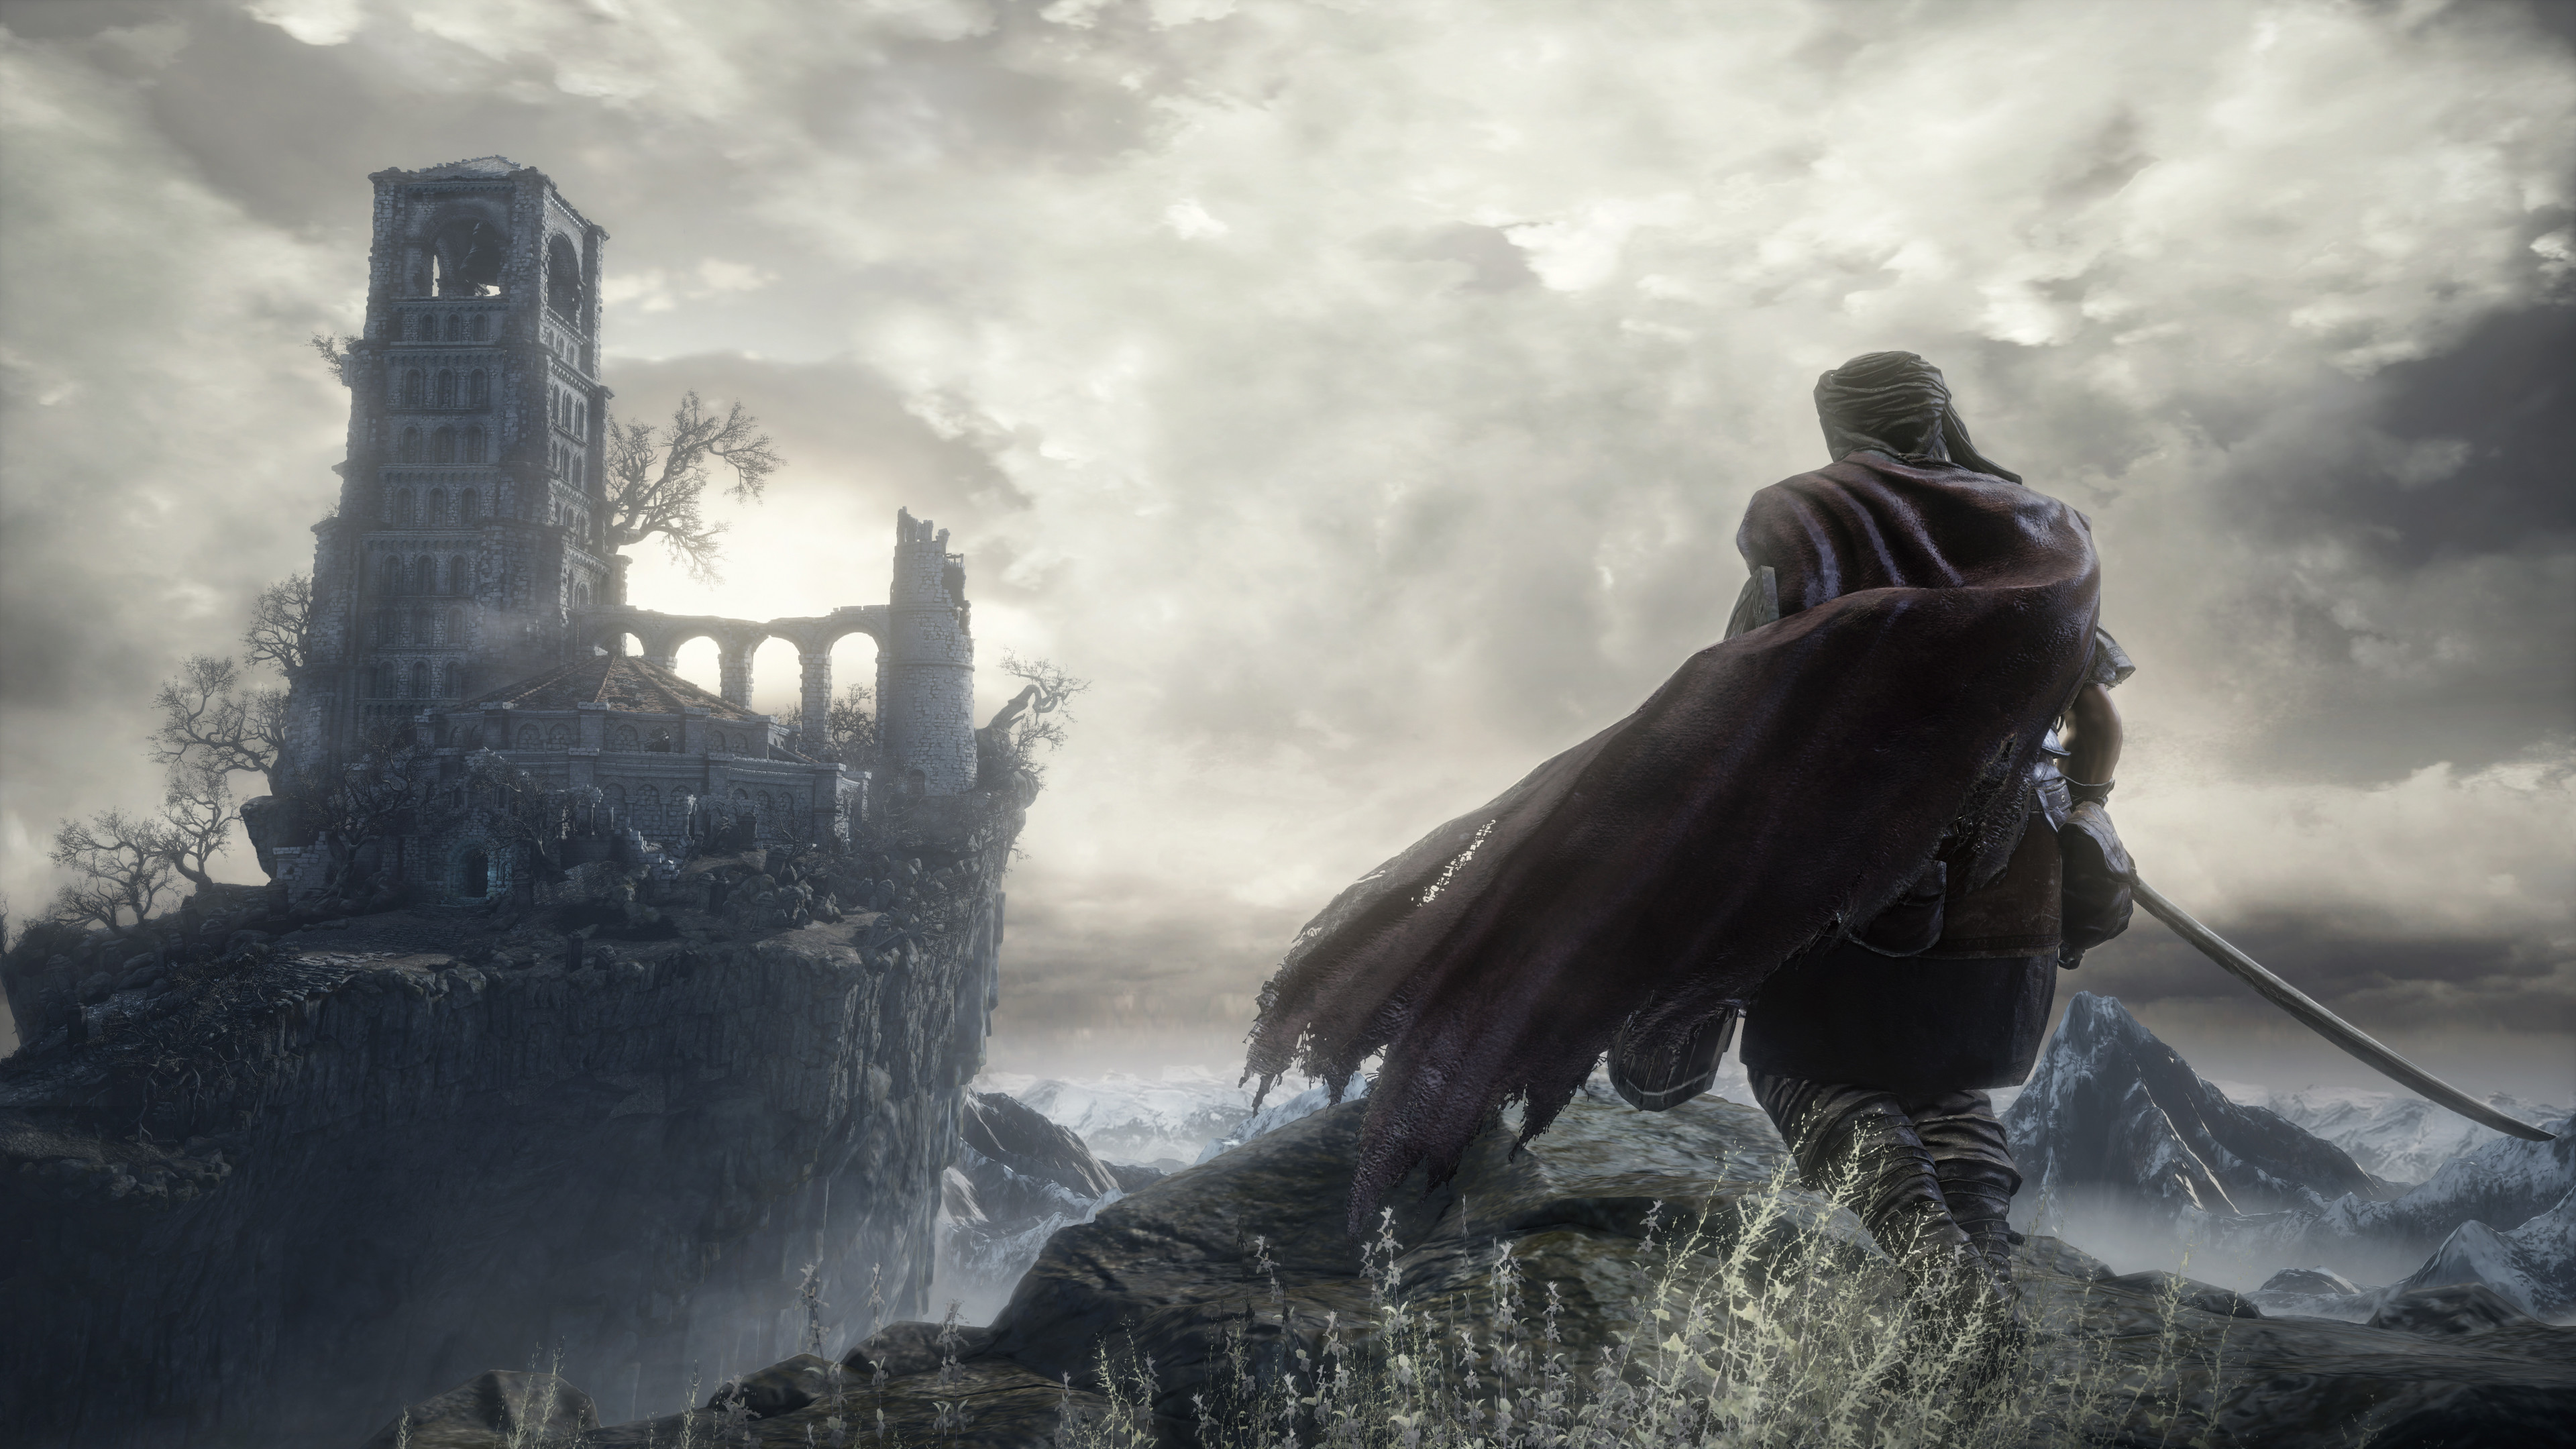 3840x2160 Video Game - Dark Souls III Wallpaper